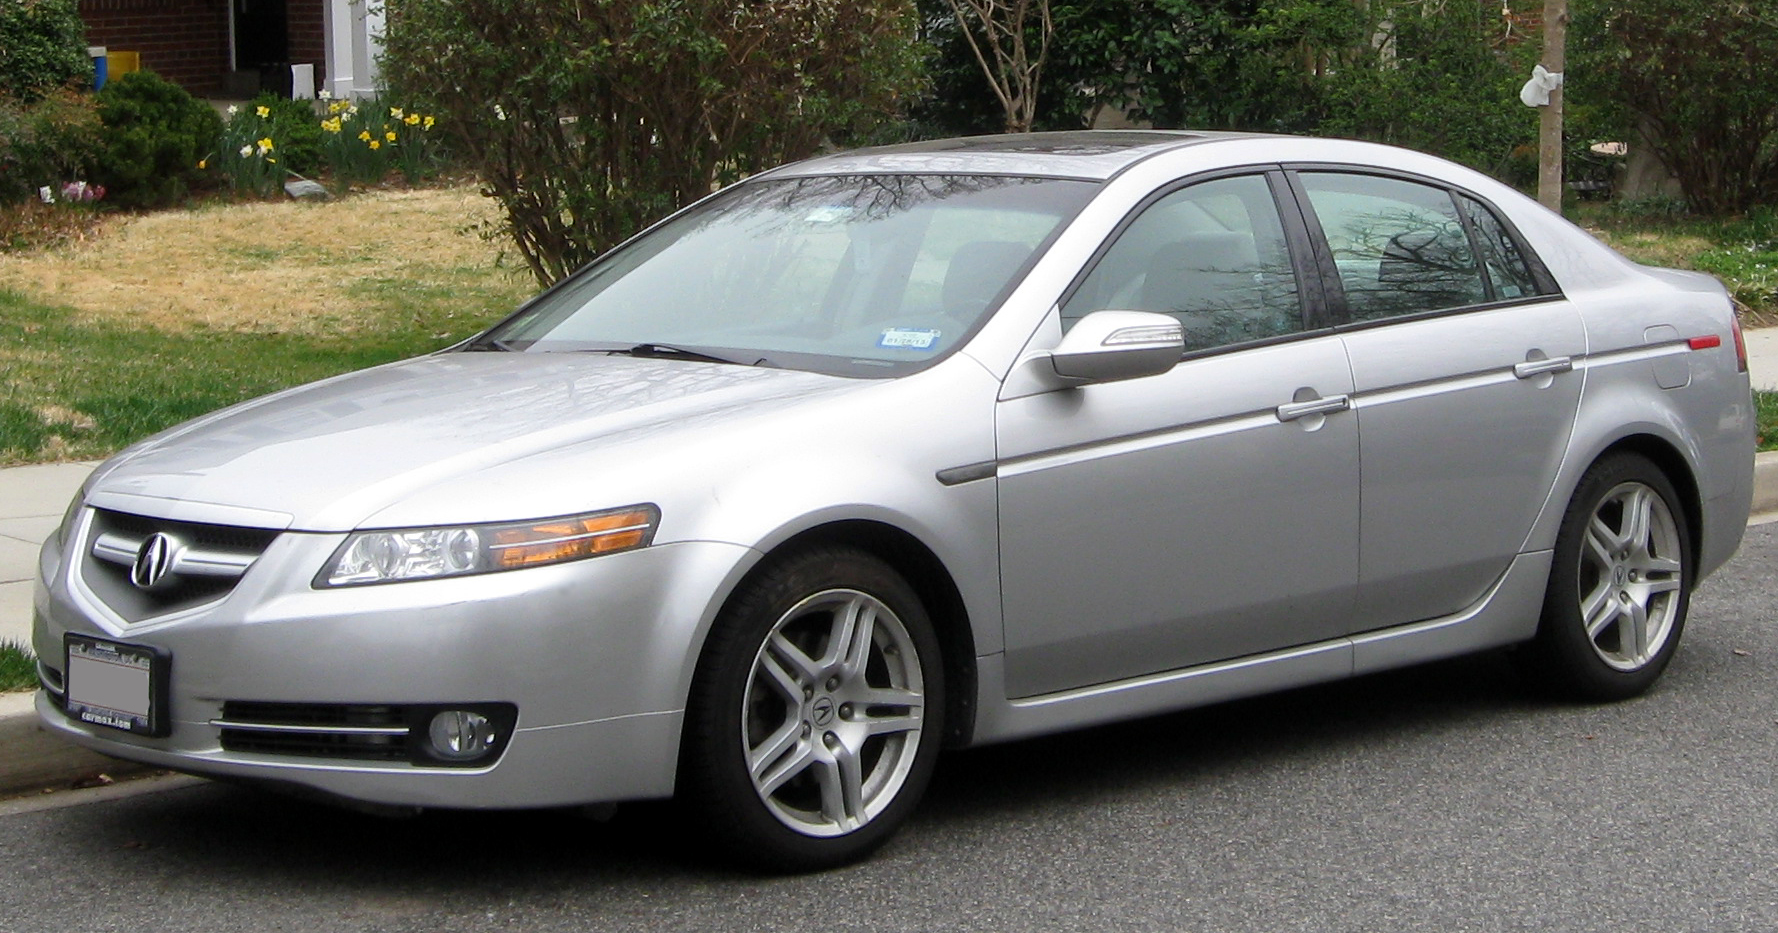 Acura Rental Cars For Sale